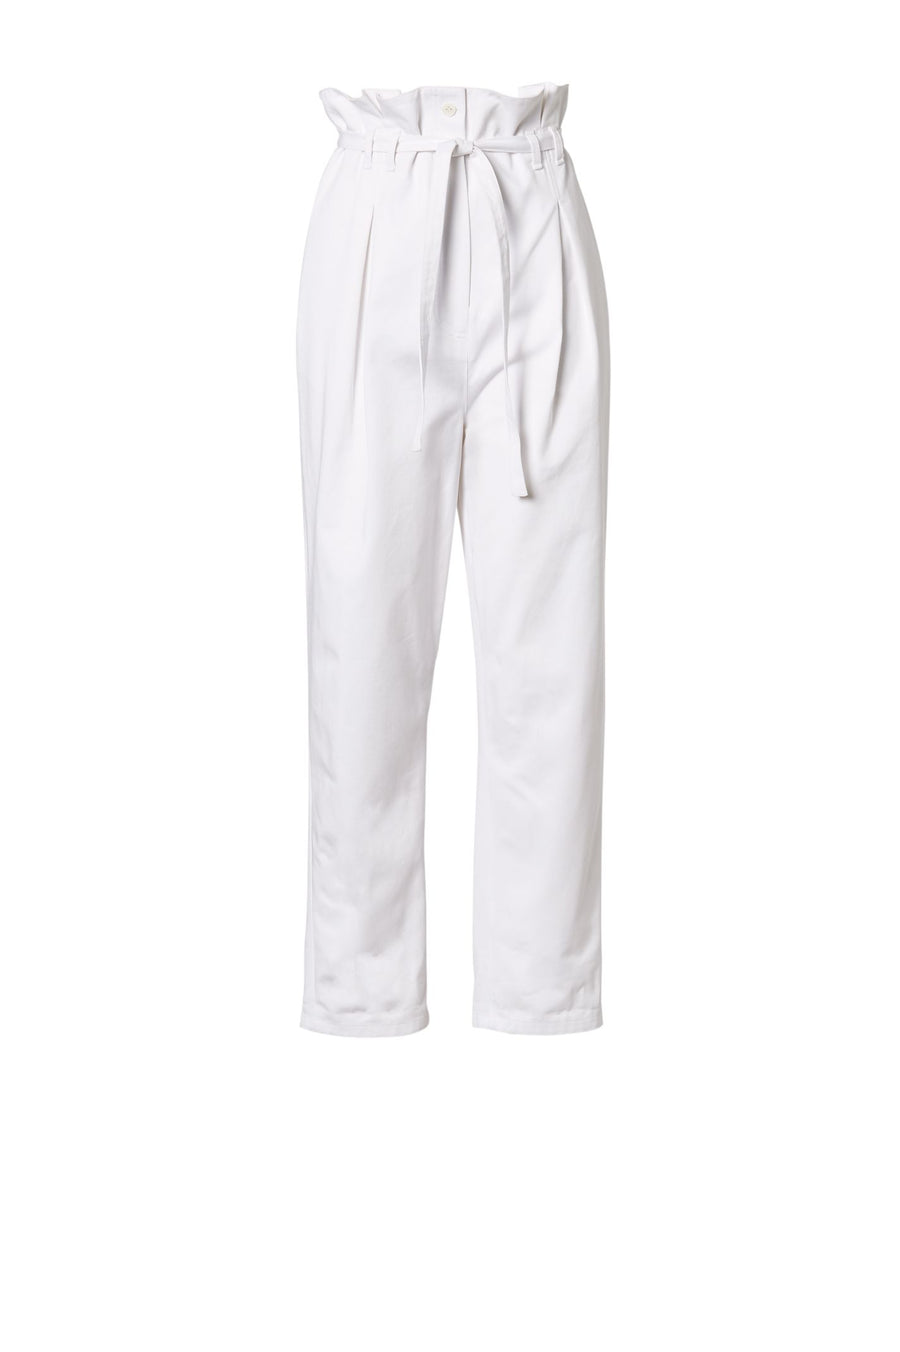 PLEAT FRONT TROUSER, HIGH WAISTED PLEATED STYLE, FALLS JUST BELOW ANKLE, COLOR WHITE